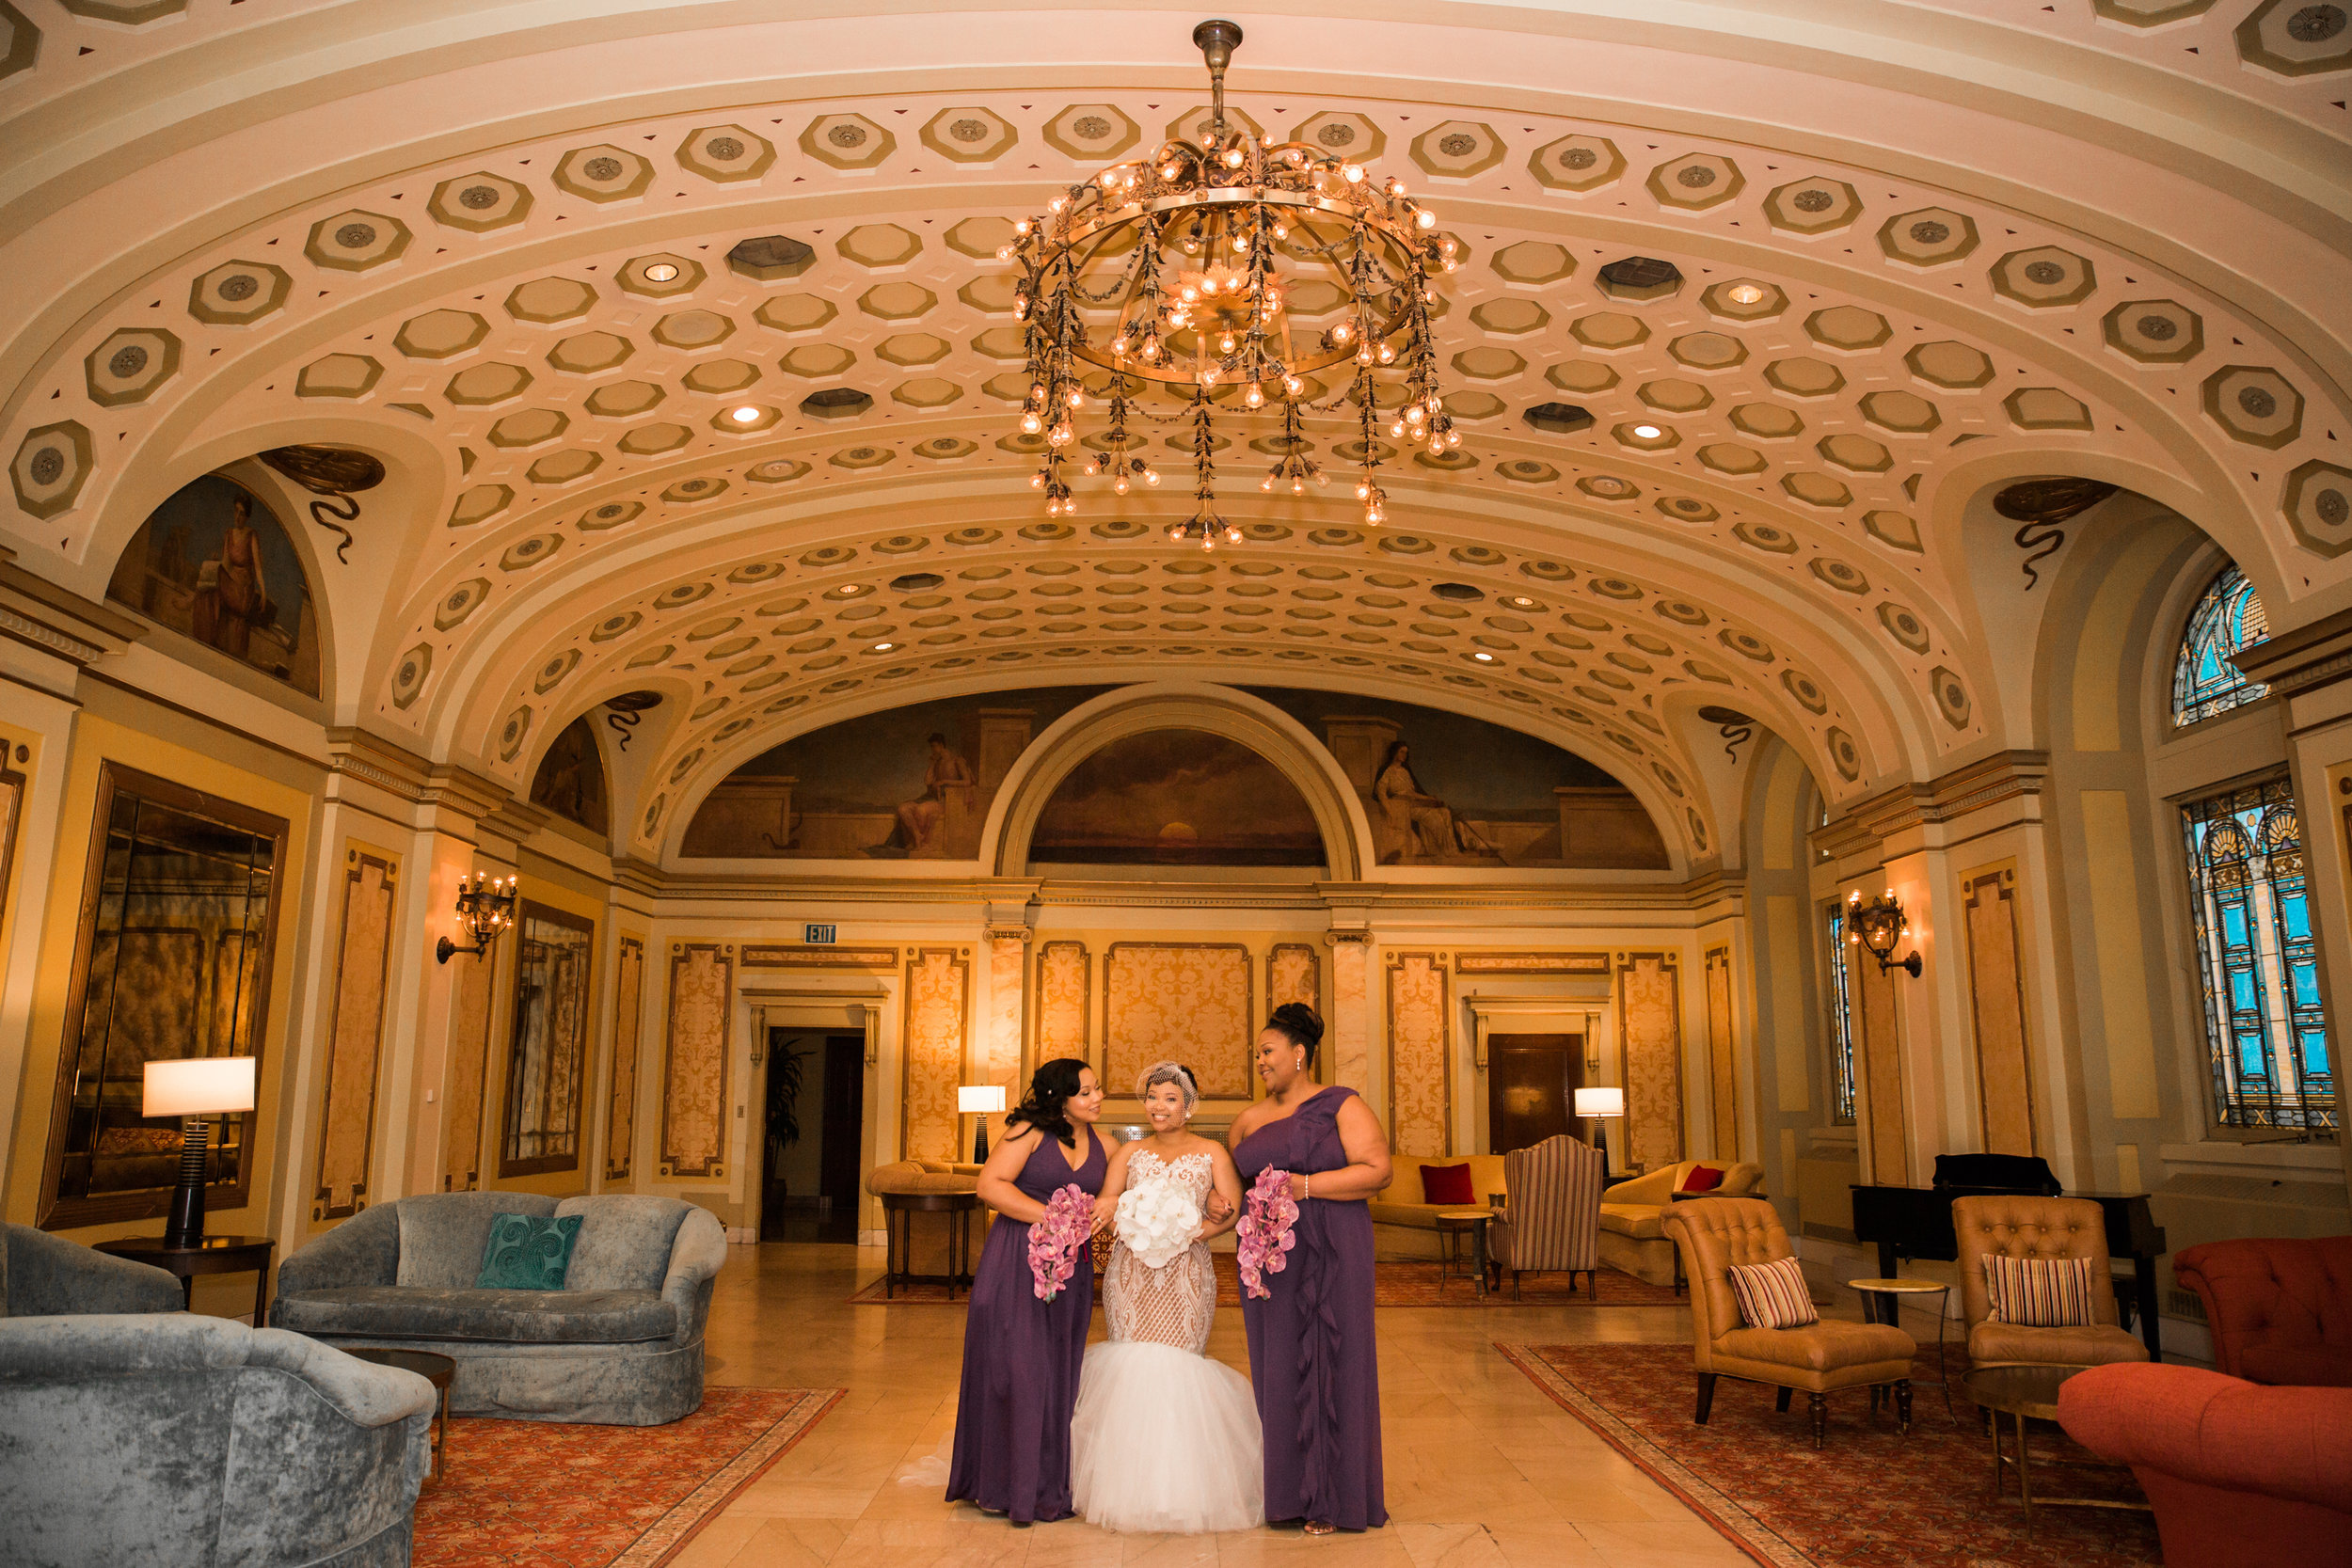 Best Classic Black Bride at The Grand Baltimore Maryland Husband and Wife Wedding Photographers Megapixels Media (29 of 98).jpg